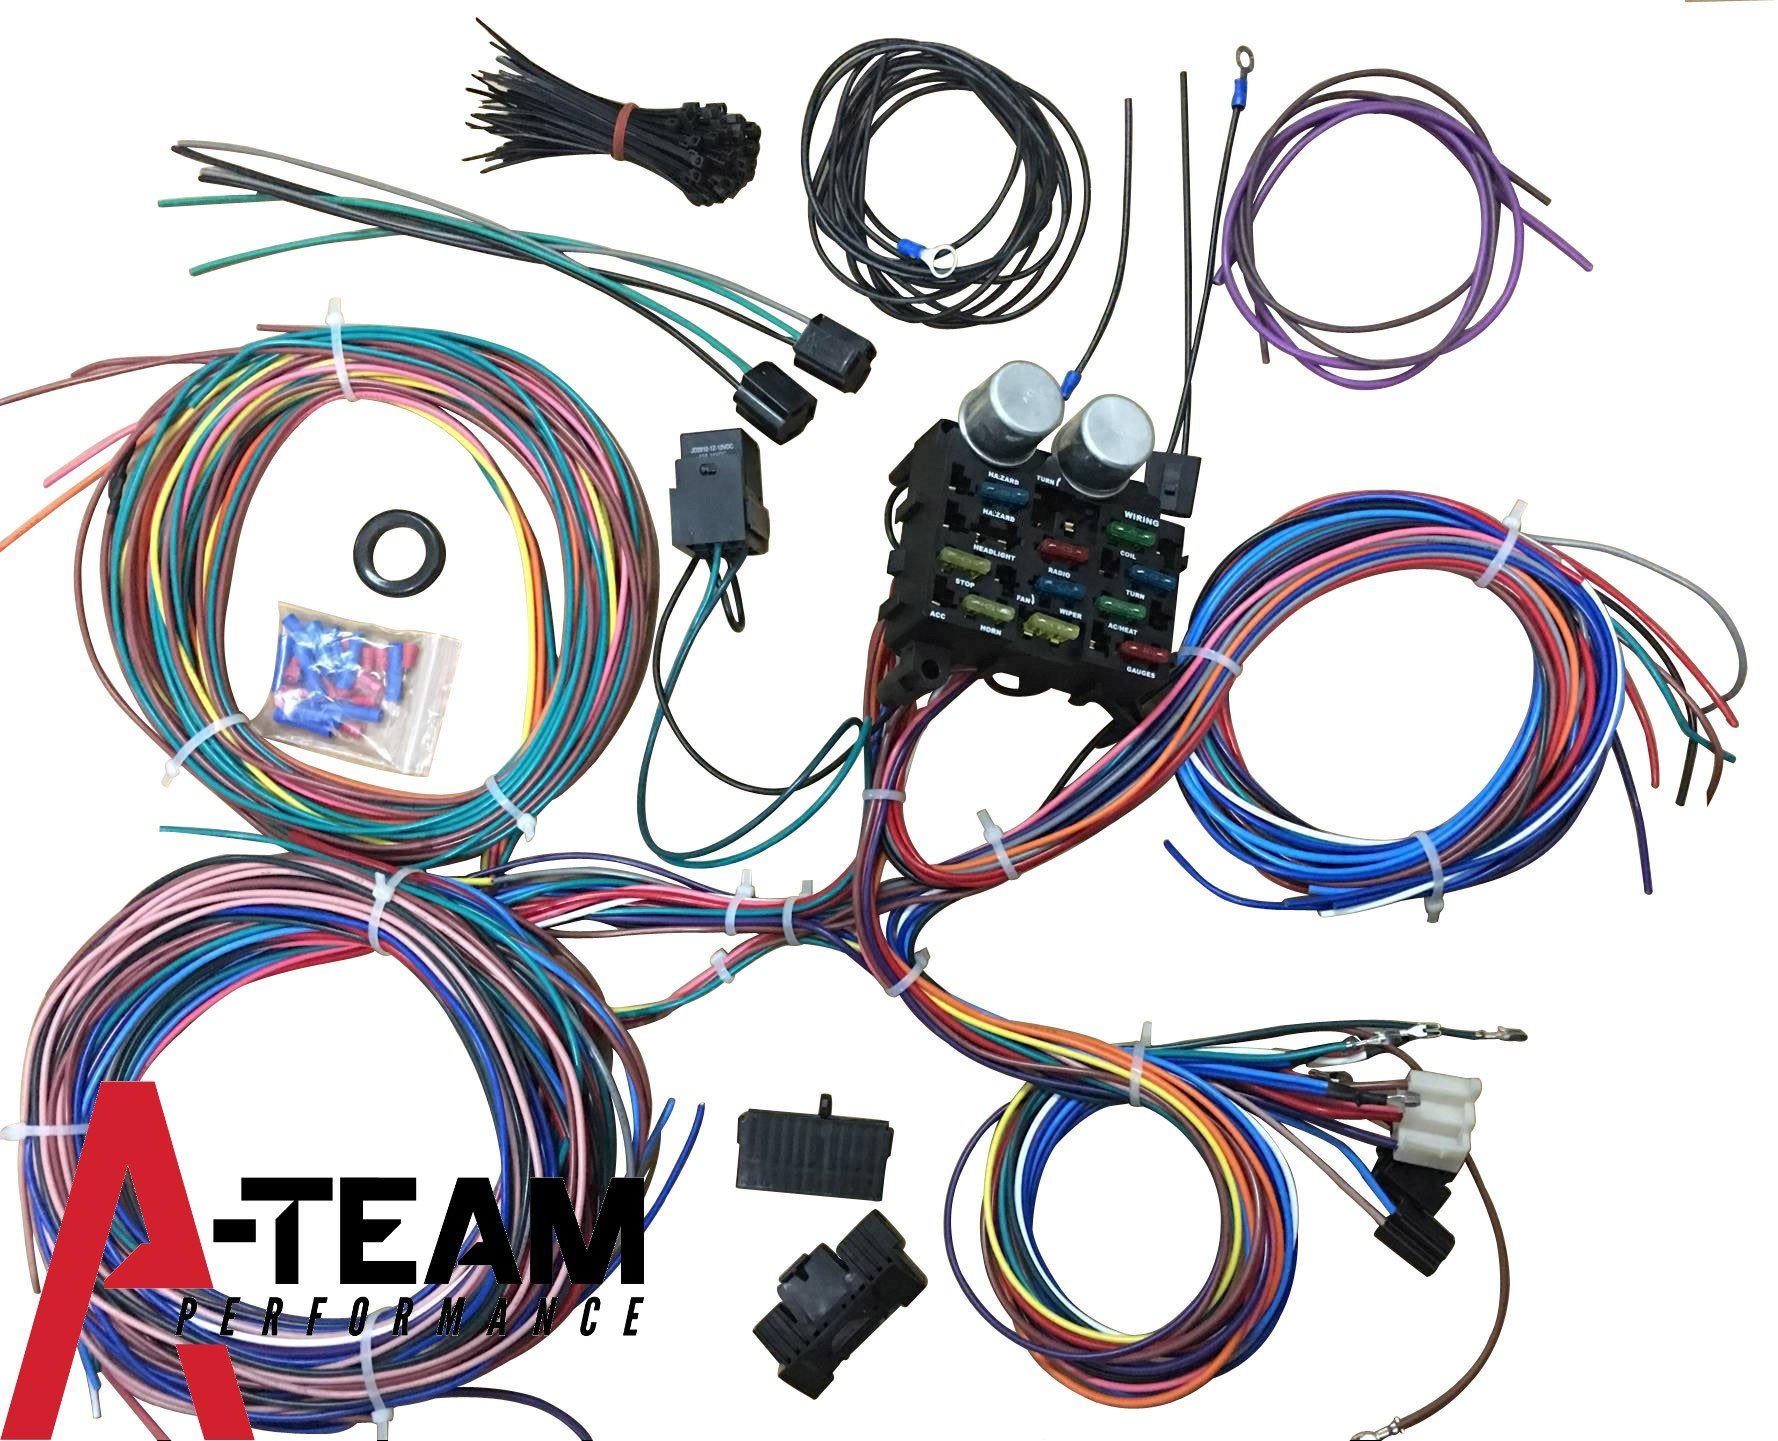 Best Street Rod Wiring Harness | Wiring Diagram on rear suspension for street rod, tires for street rod, heater for street rod, fuel gauge for street rod,